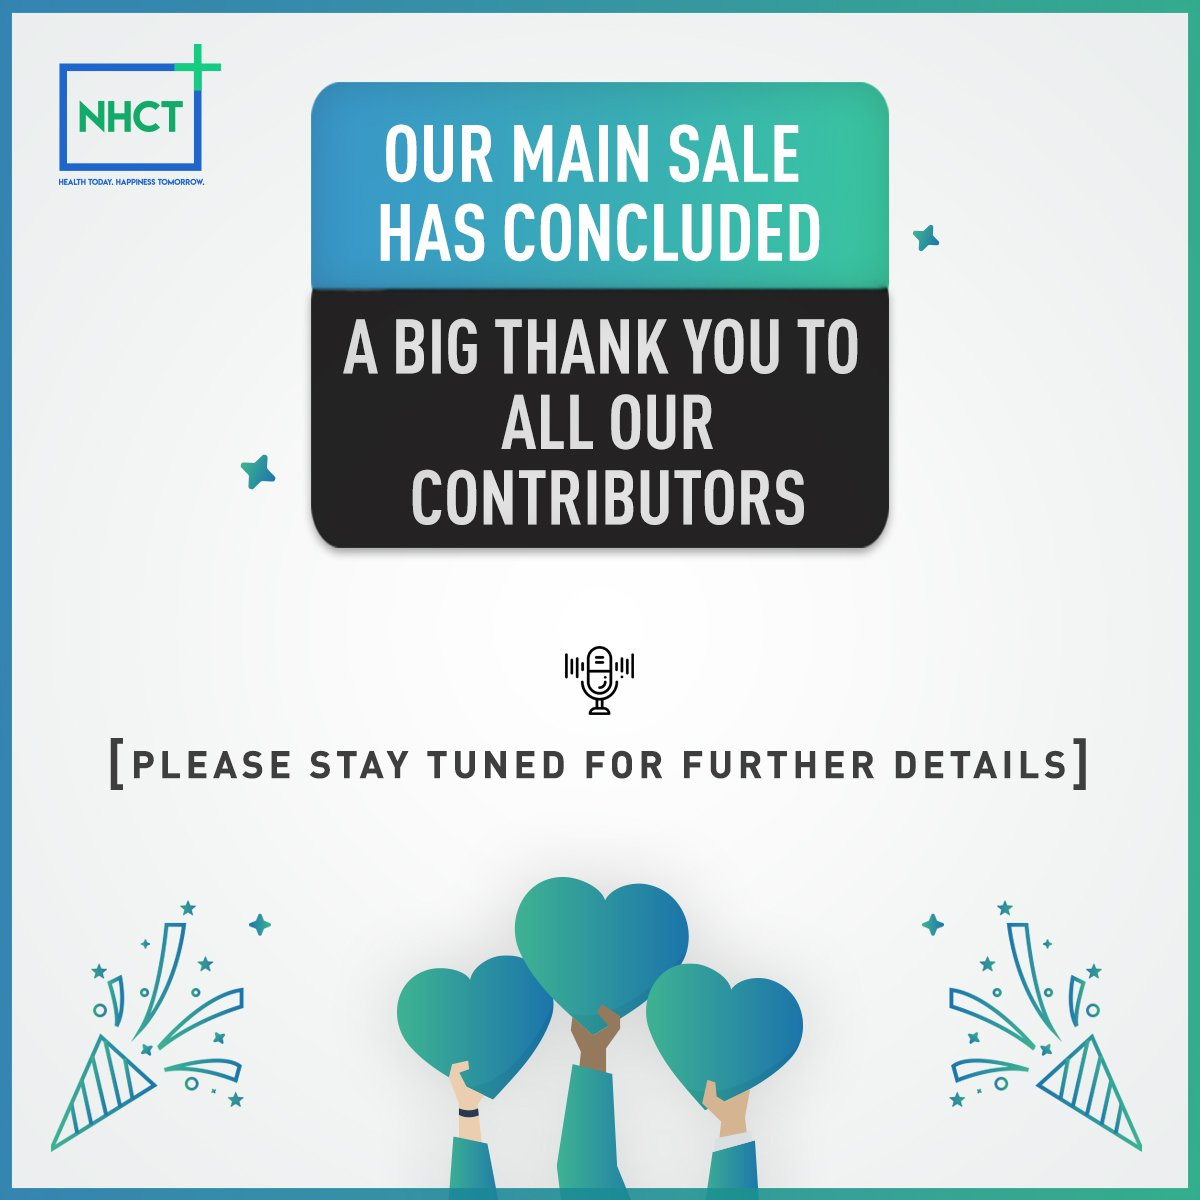 NHCT Main Sale has concluded. We want to thank all our contributors for their relentless support. Please stay tuned for further details. #NHCT #HealthCare #PersonalizedHealth #Wawa #Warma #PreventiveCare #Tokens #TotalHealth #cryptocurrency<br>http://pic.twitter.com/wgEzdrlijX